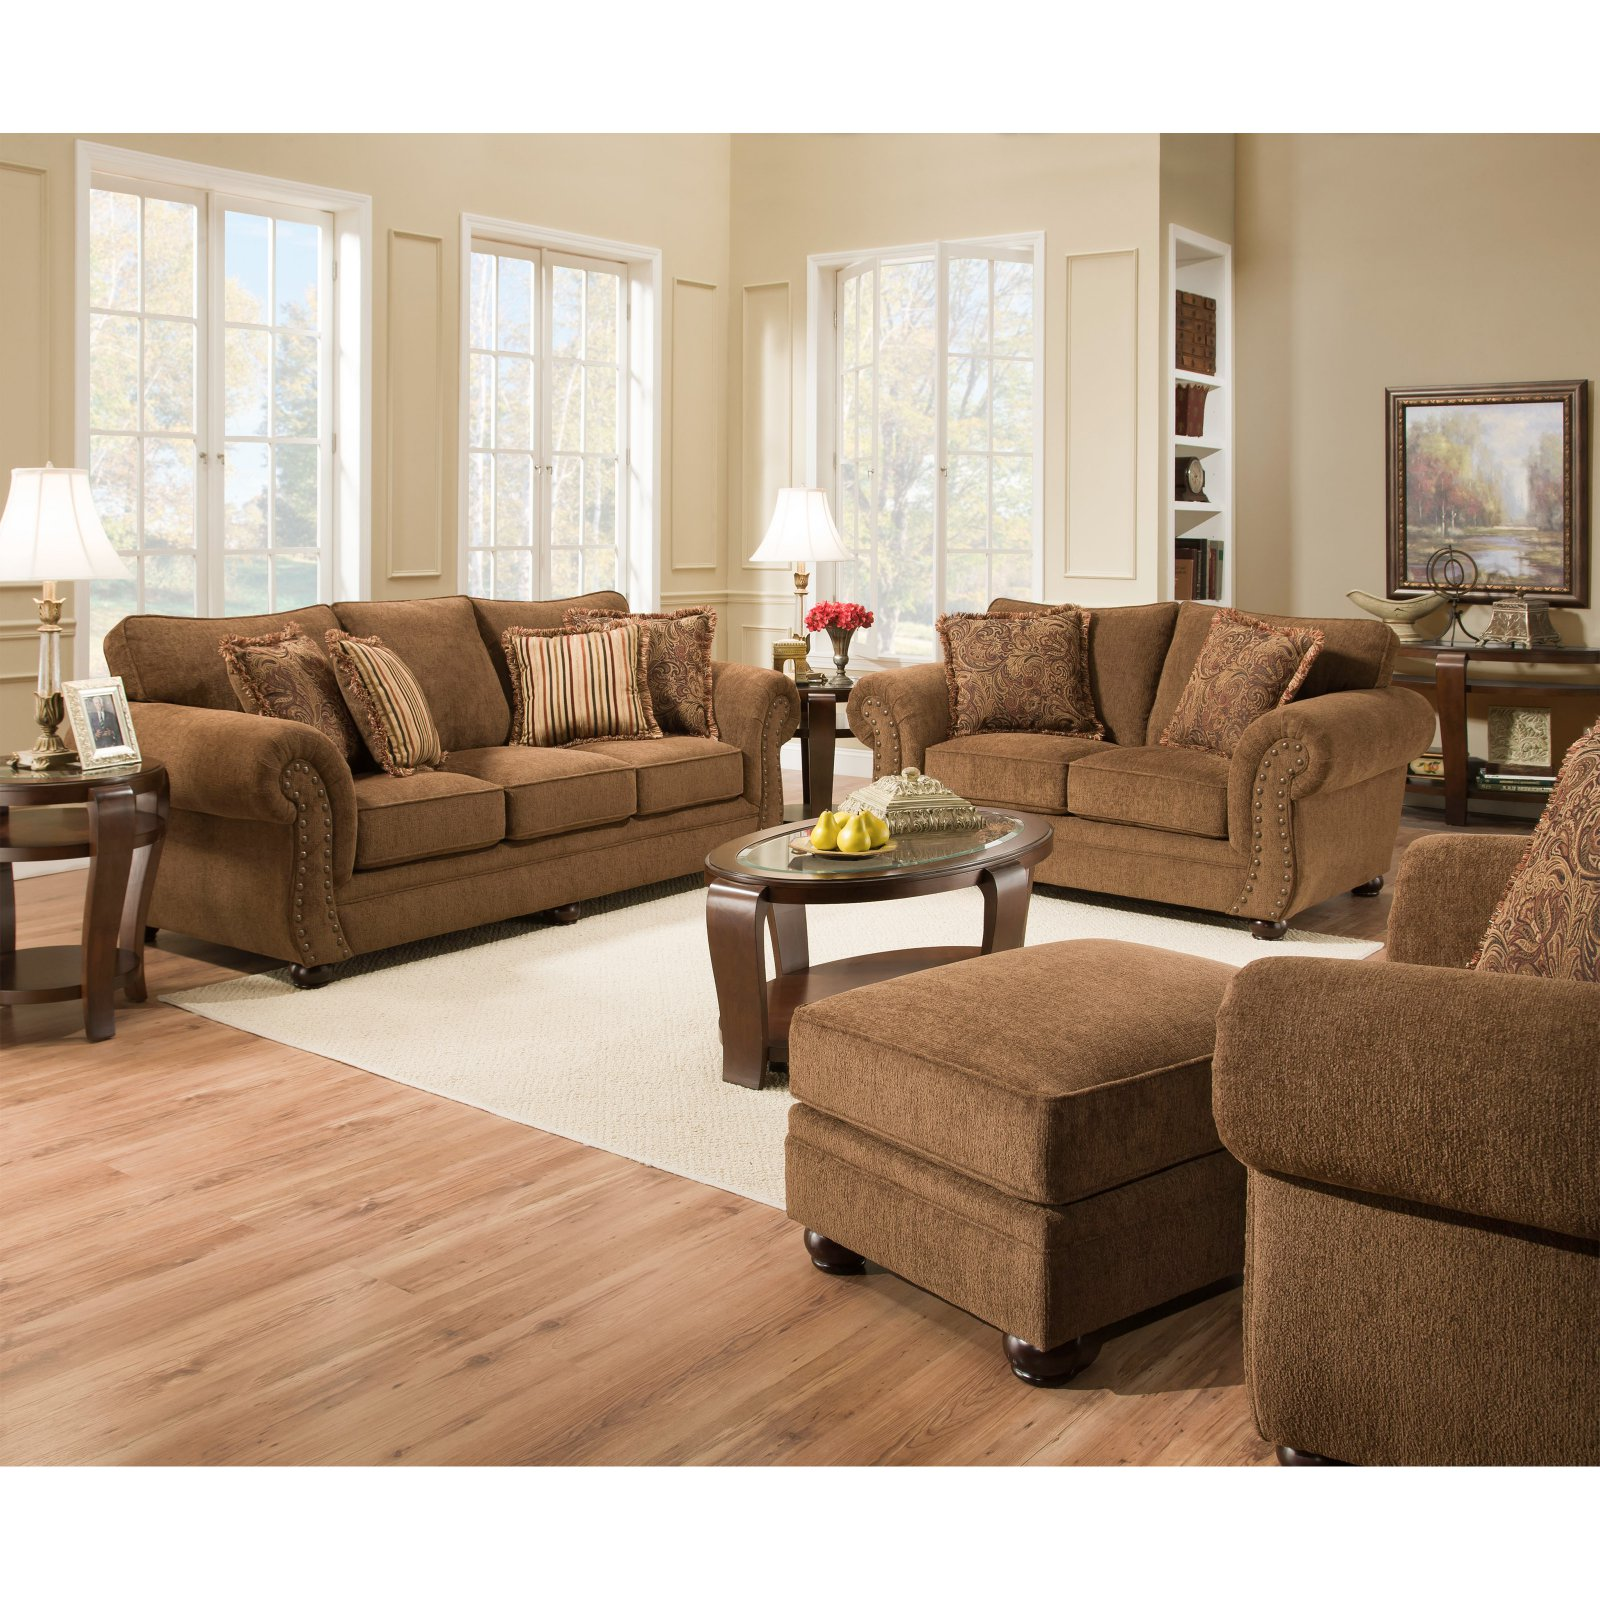 Simmons Upholstery Outback Chocolate Seating